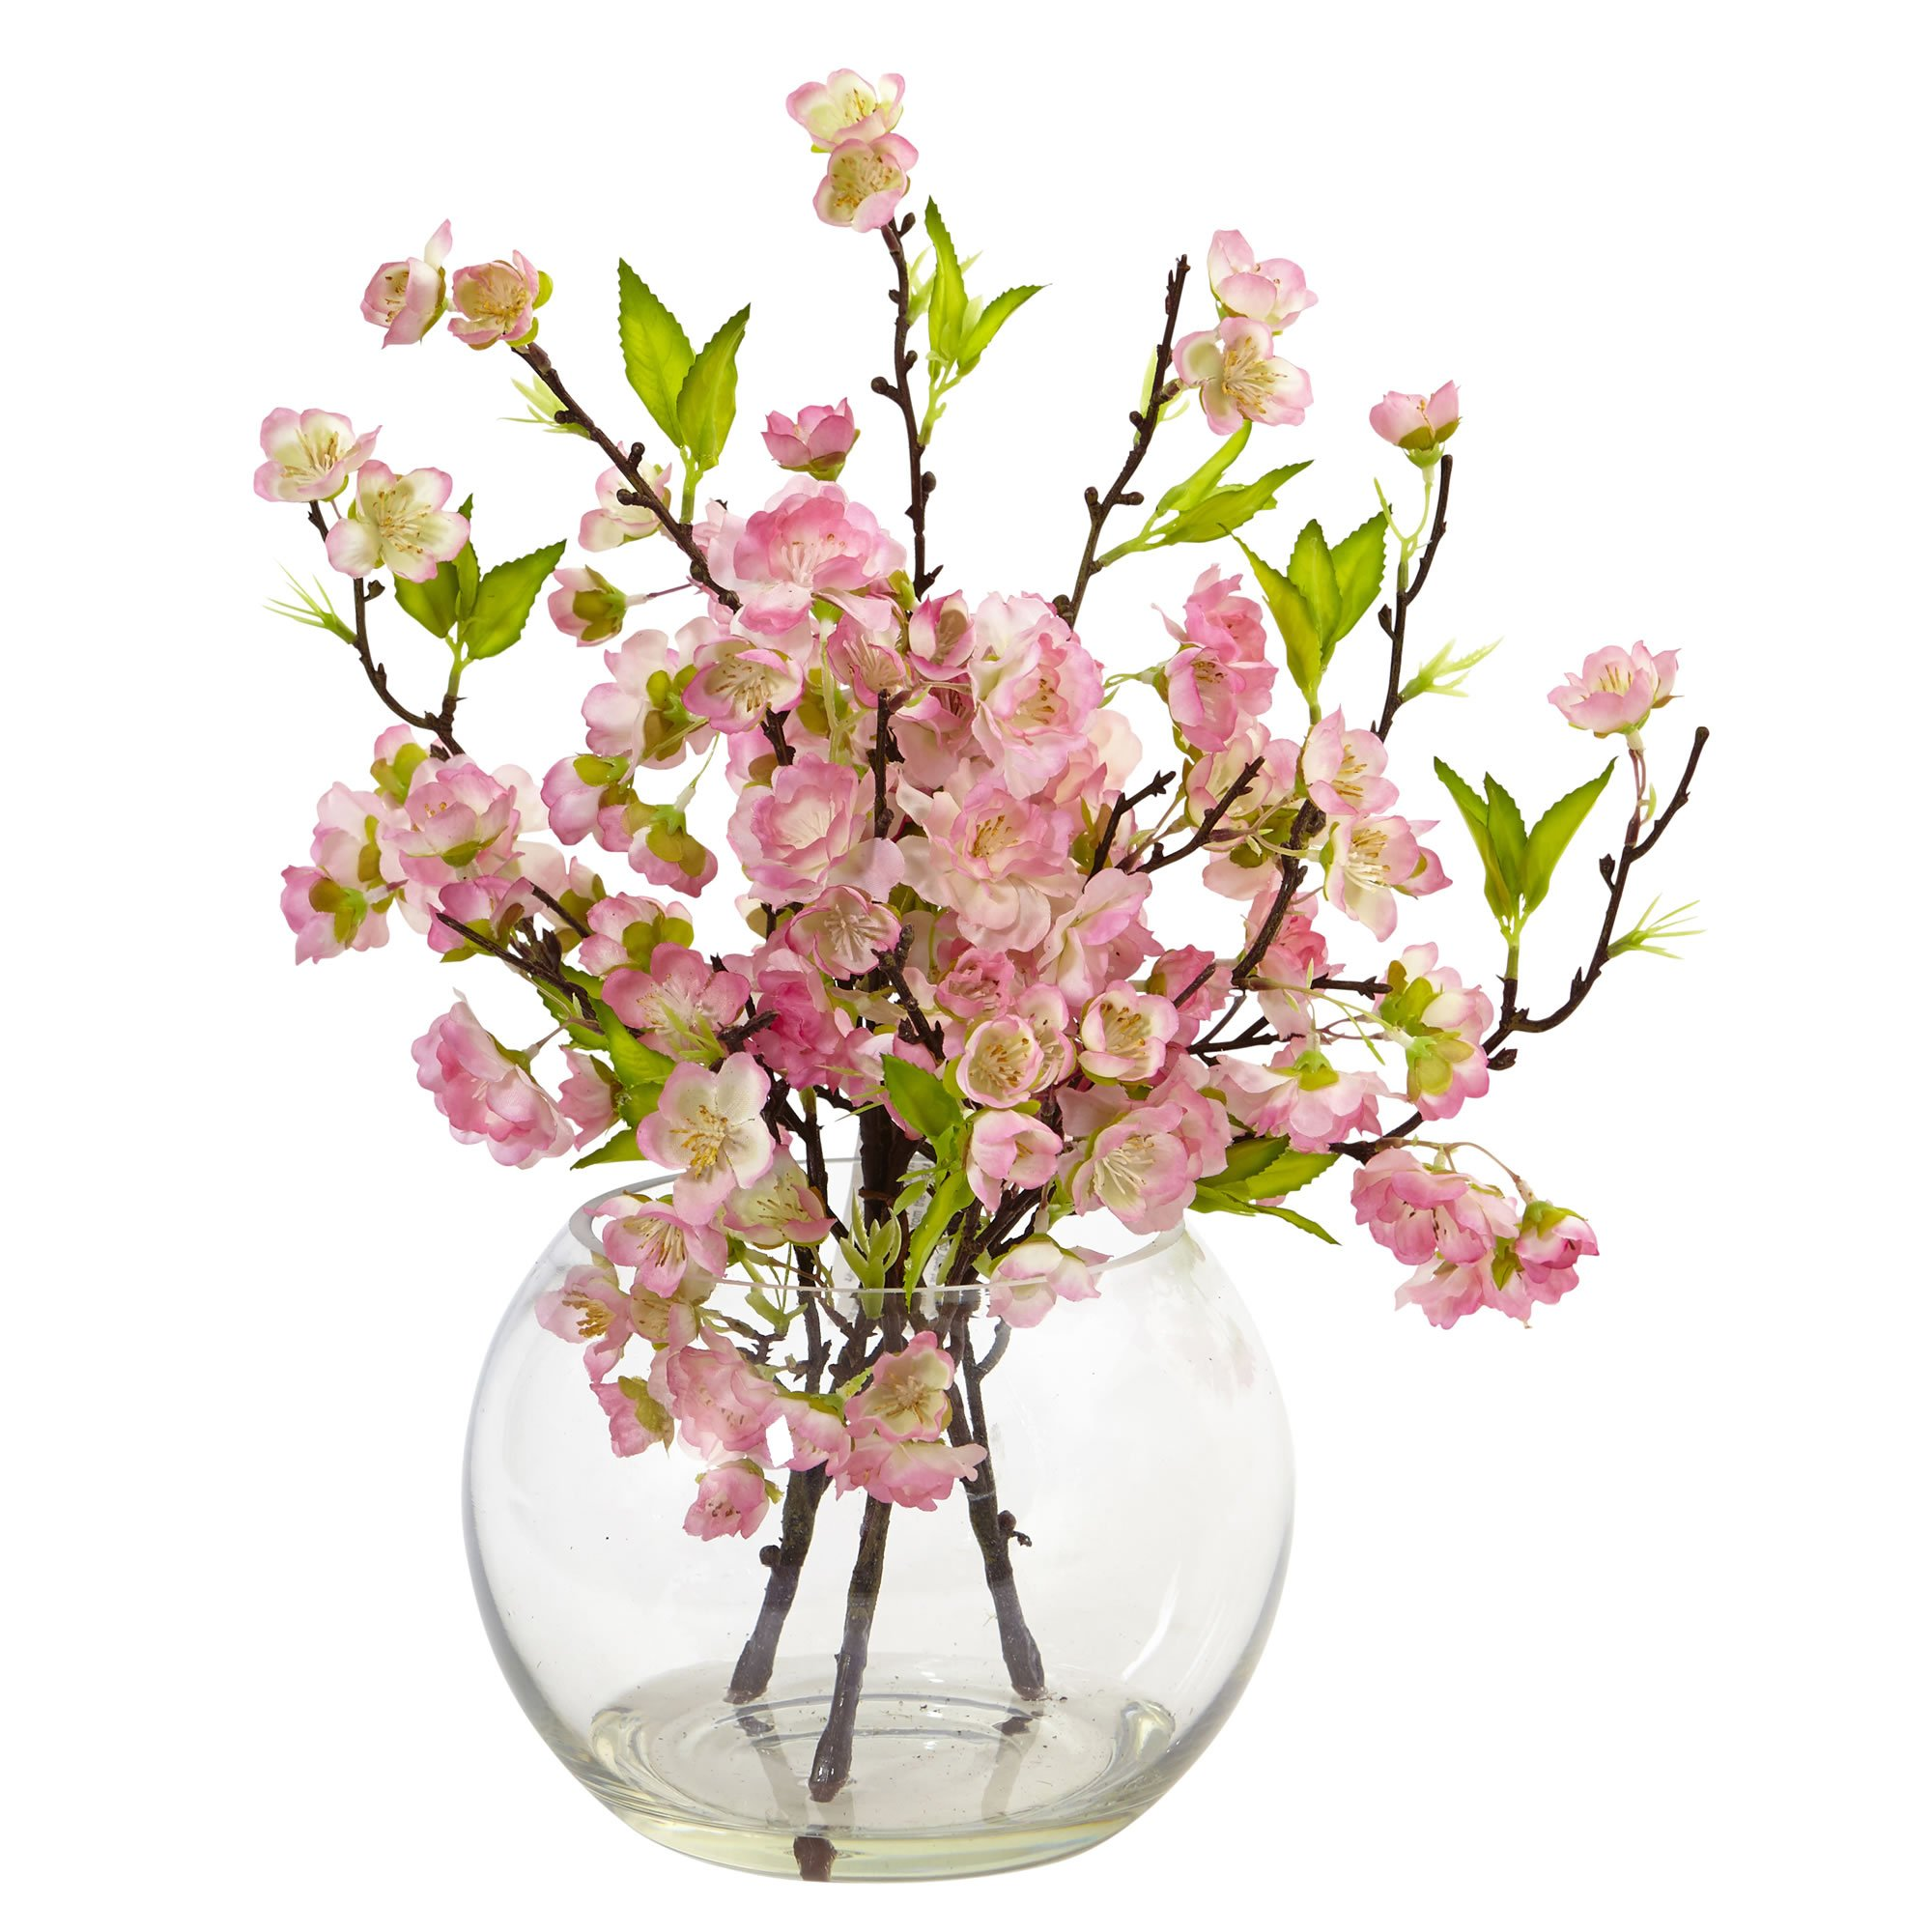 Artificial Flowers Cherry Blossom In Large Vase Silk Flowers Artificial Flowers Large Glass Vase Flower Arrangements